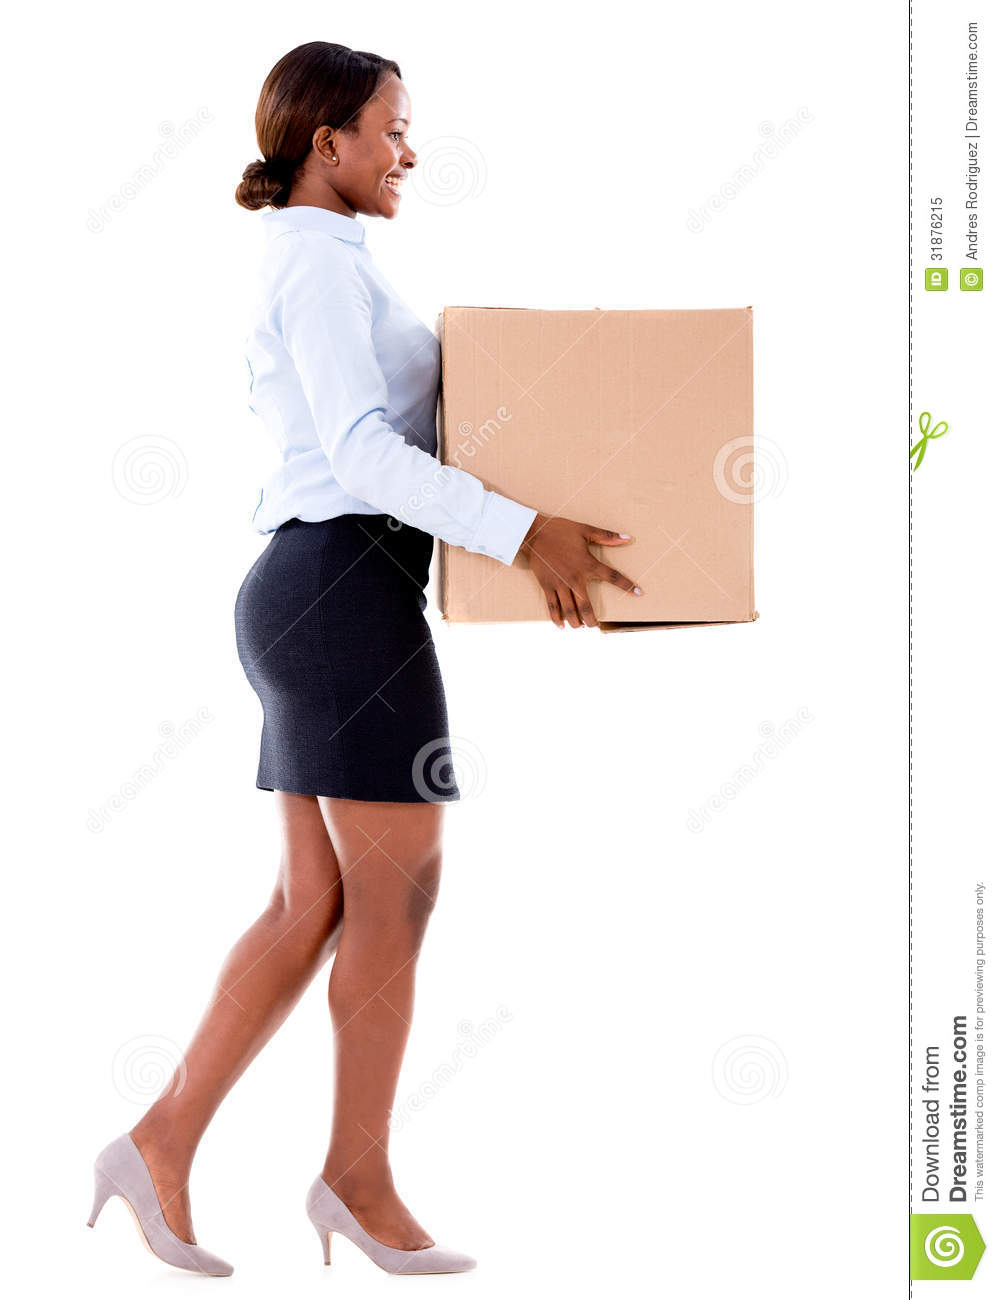 business-woman-carrying-box-cardboard-isolated-over-white-31876215.jpg